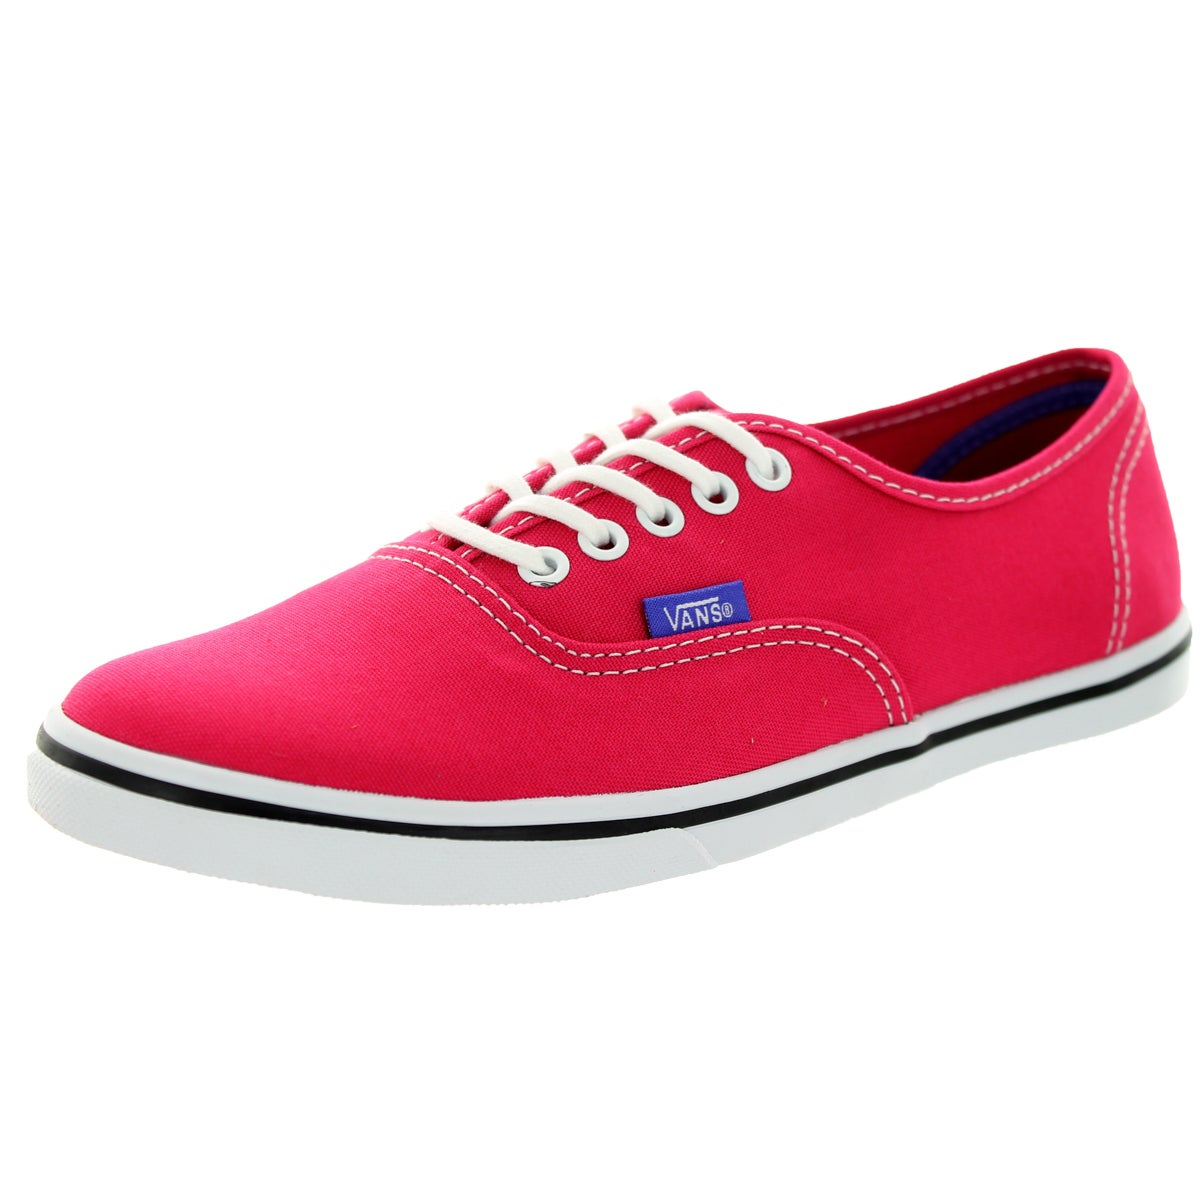 Vans Unisex Authentic Lo Pro Red Canvas Walking Shoes (7....